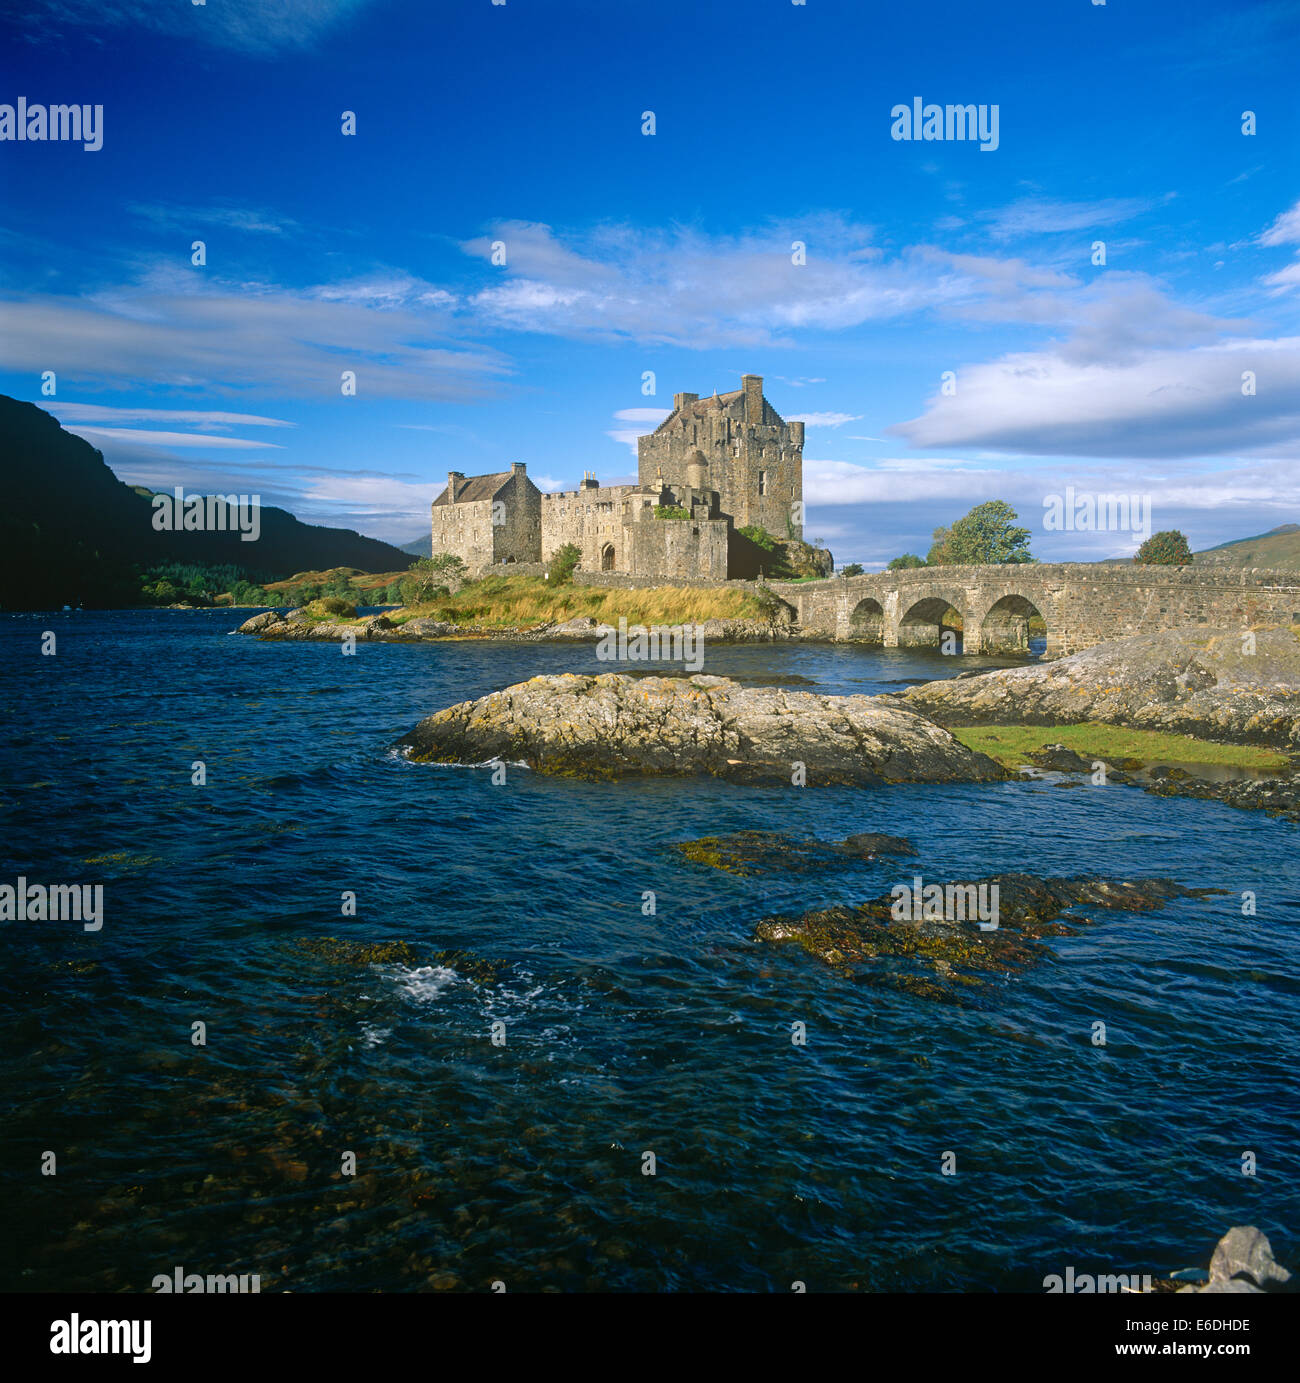 eilean donan castle in scotland uk - Stock Image